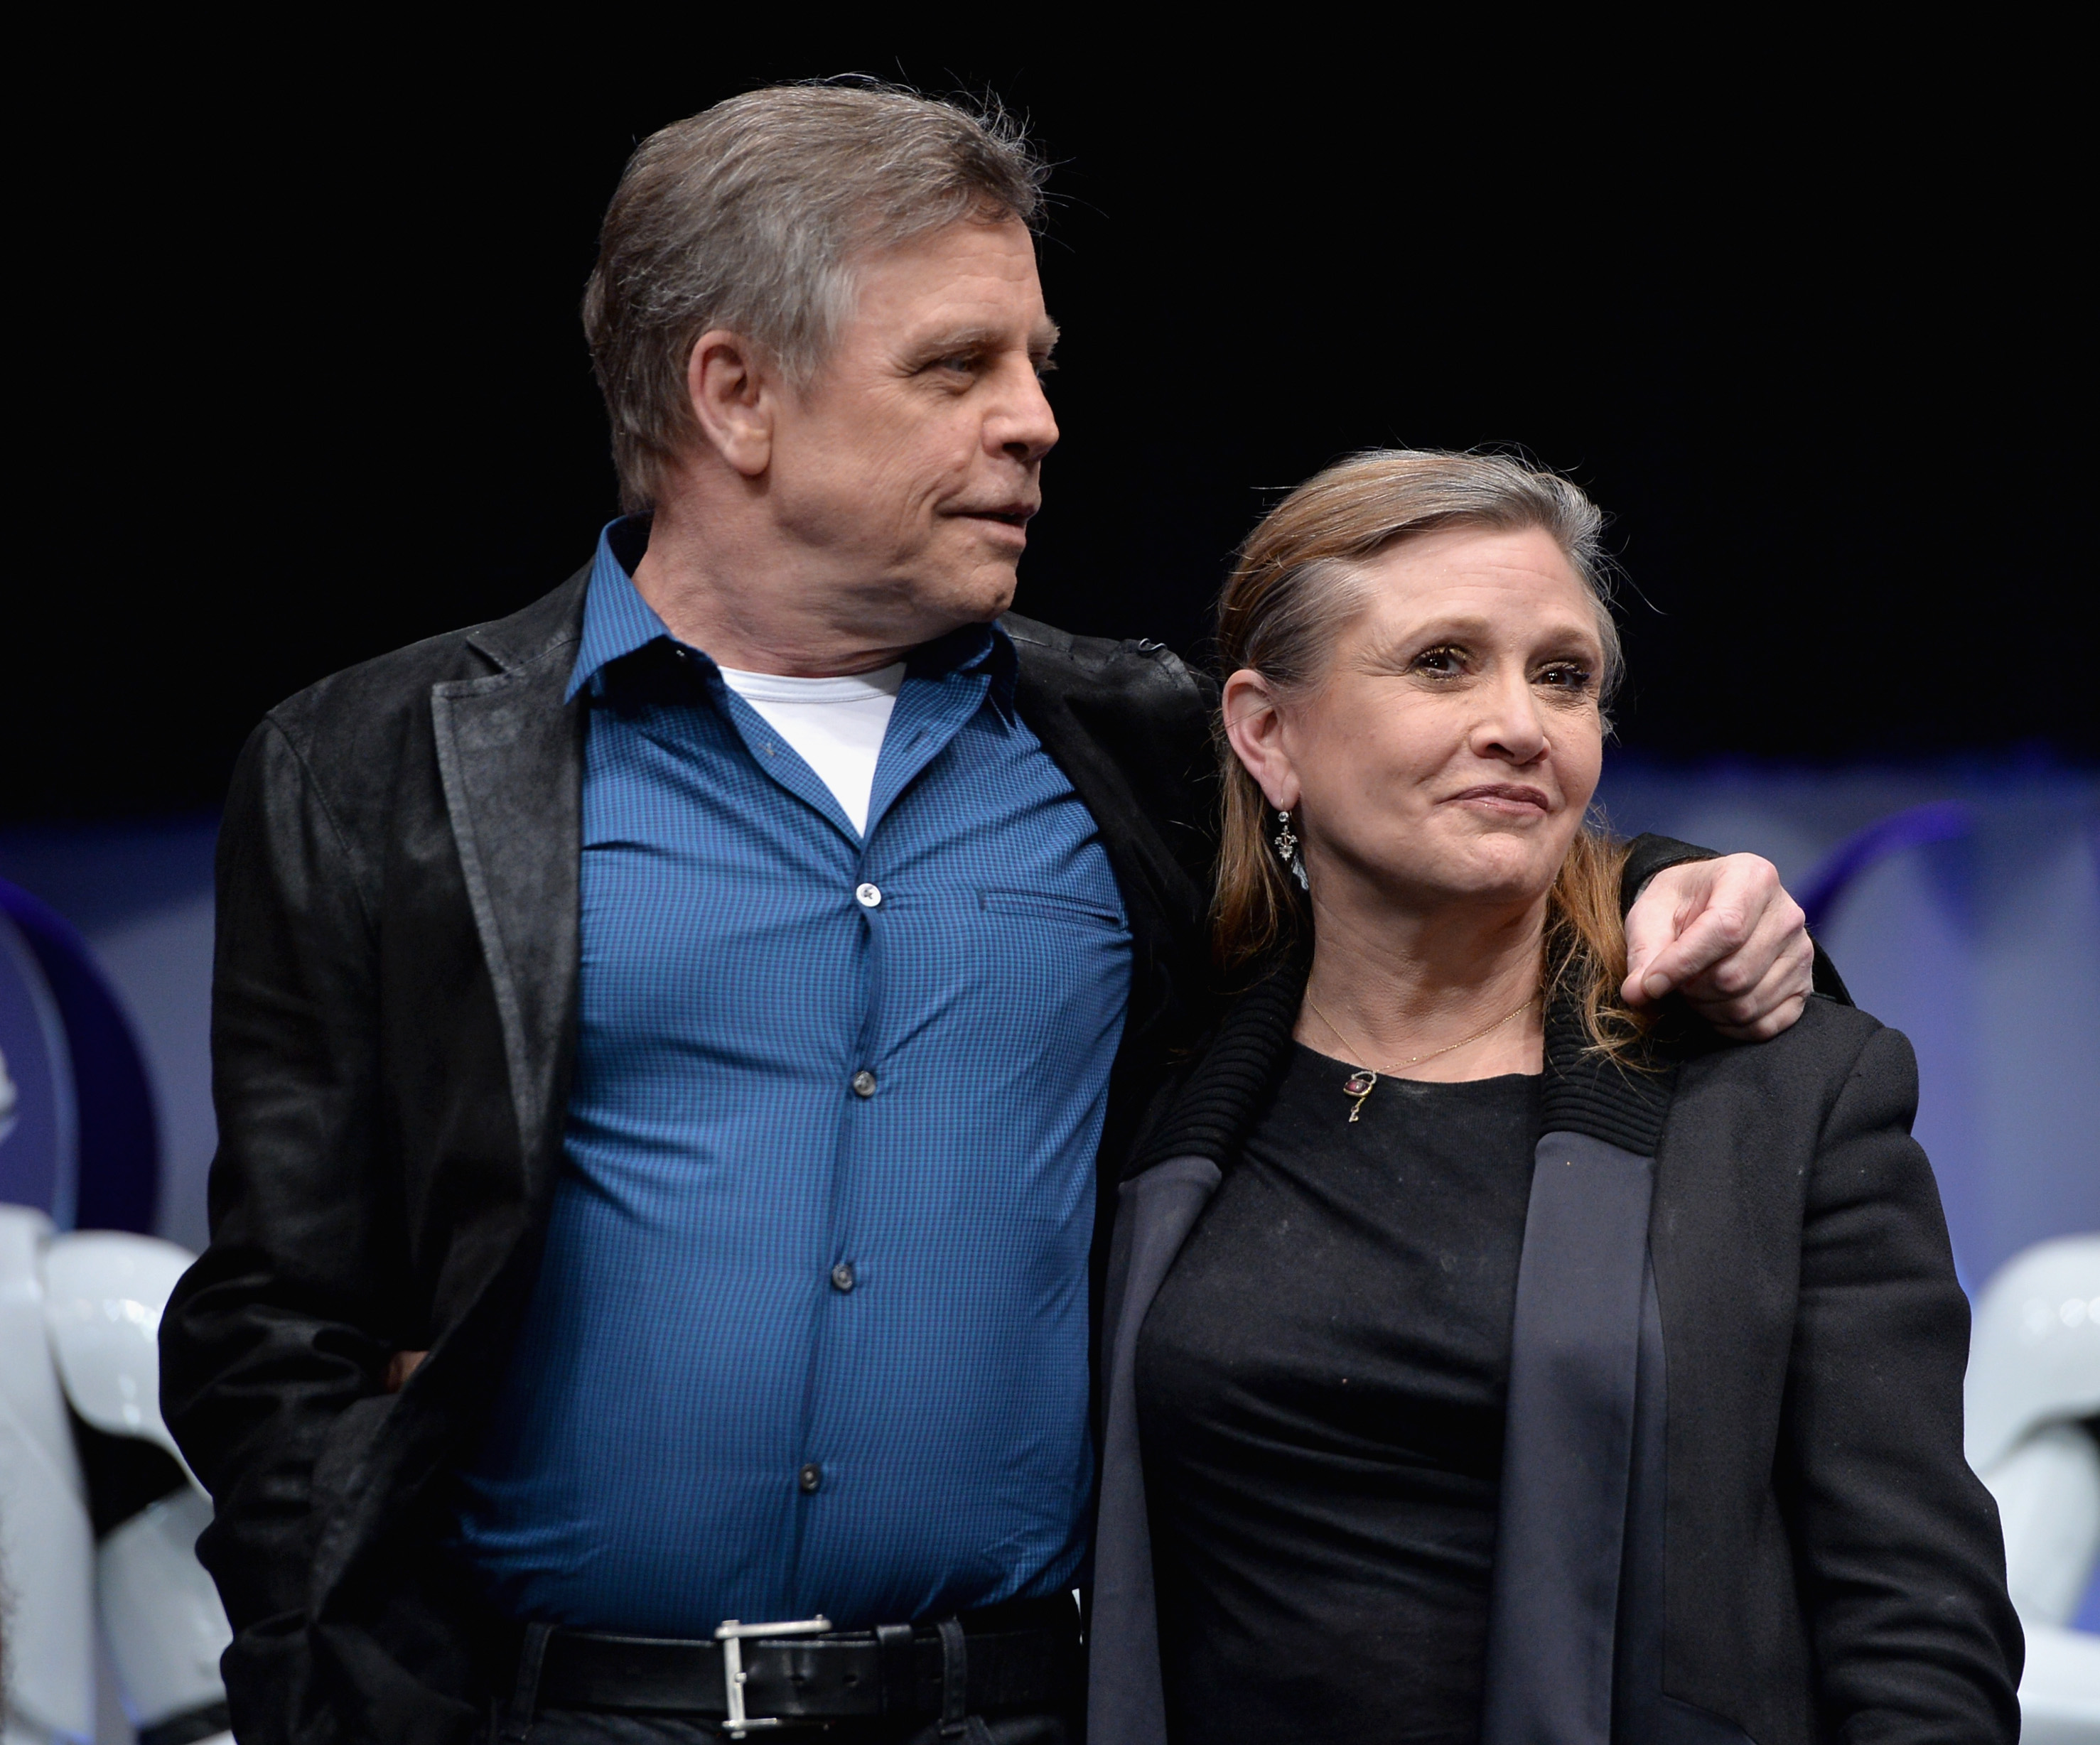 Star Wars images Mark Hamill and Carrie Fisher aka Luke Skywalker 2955x2456